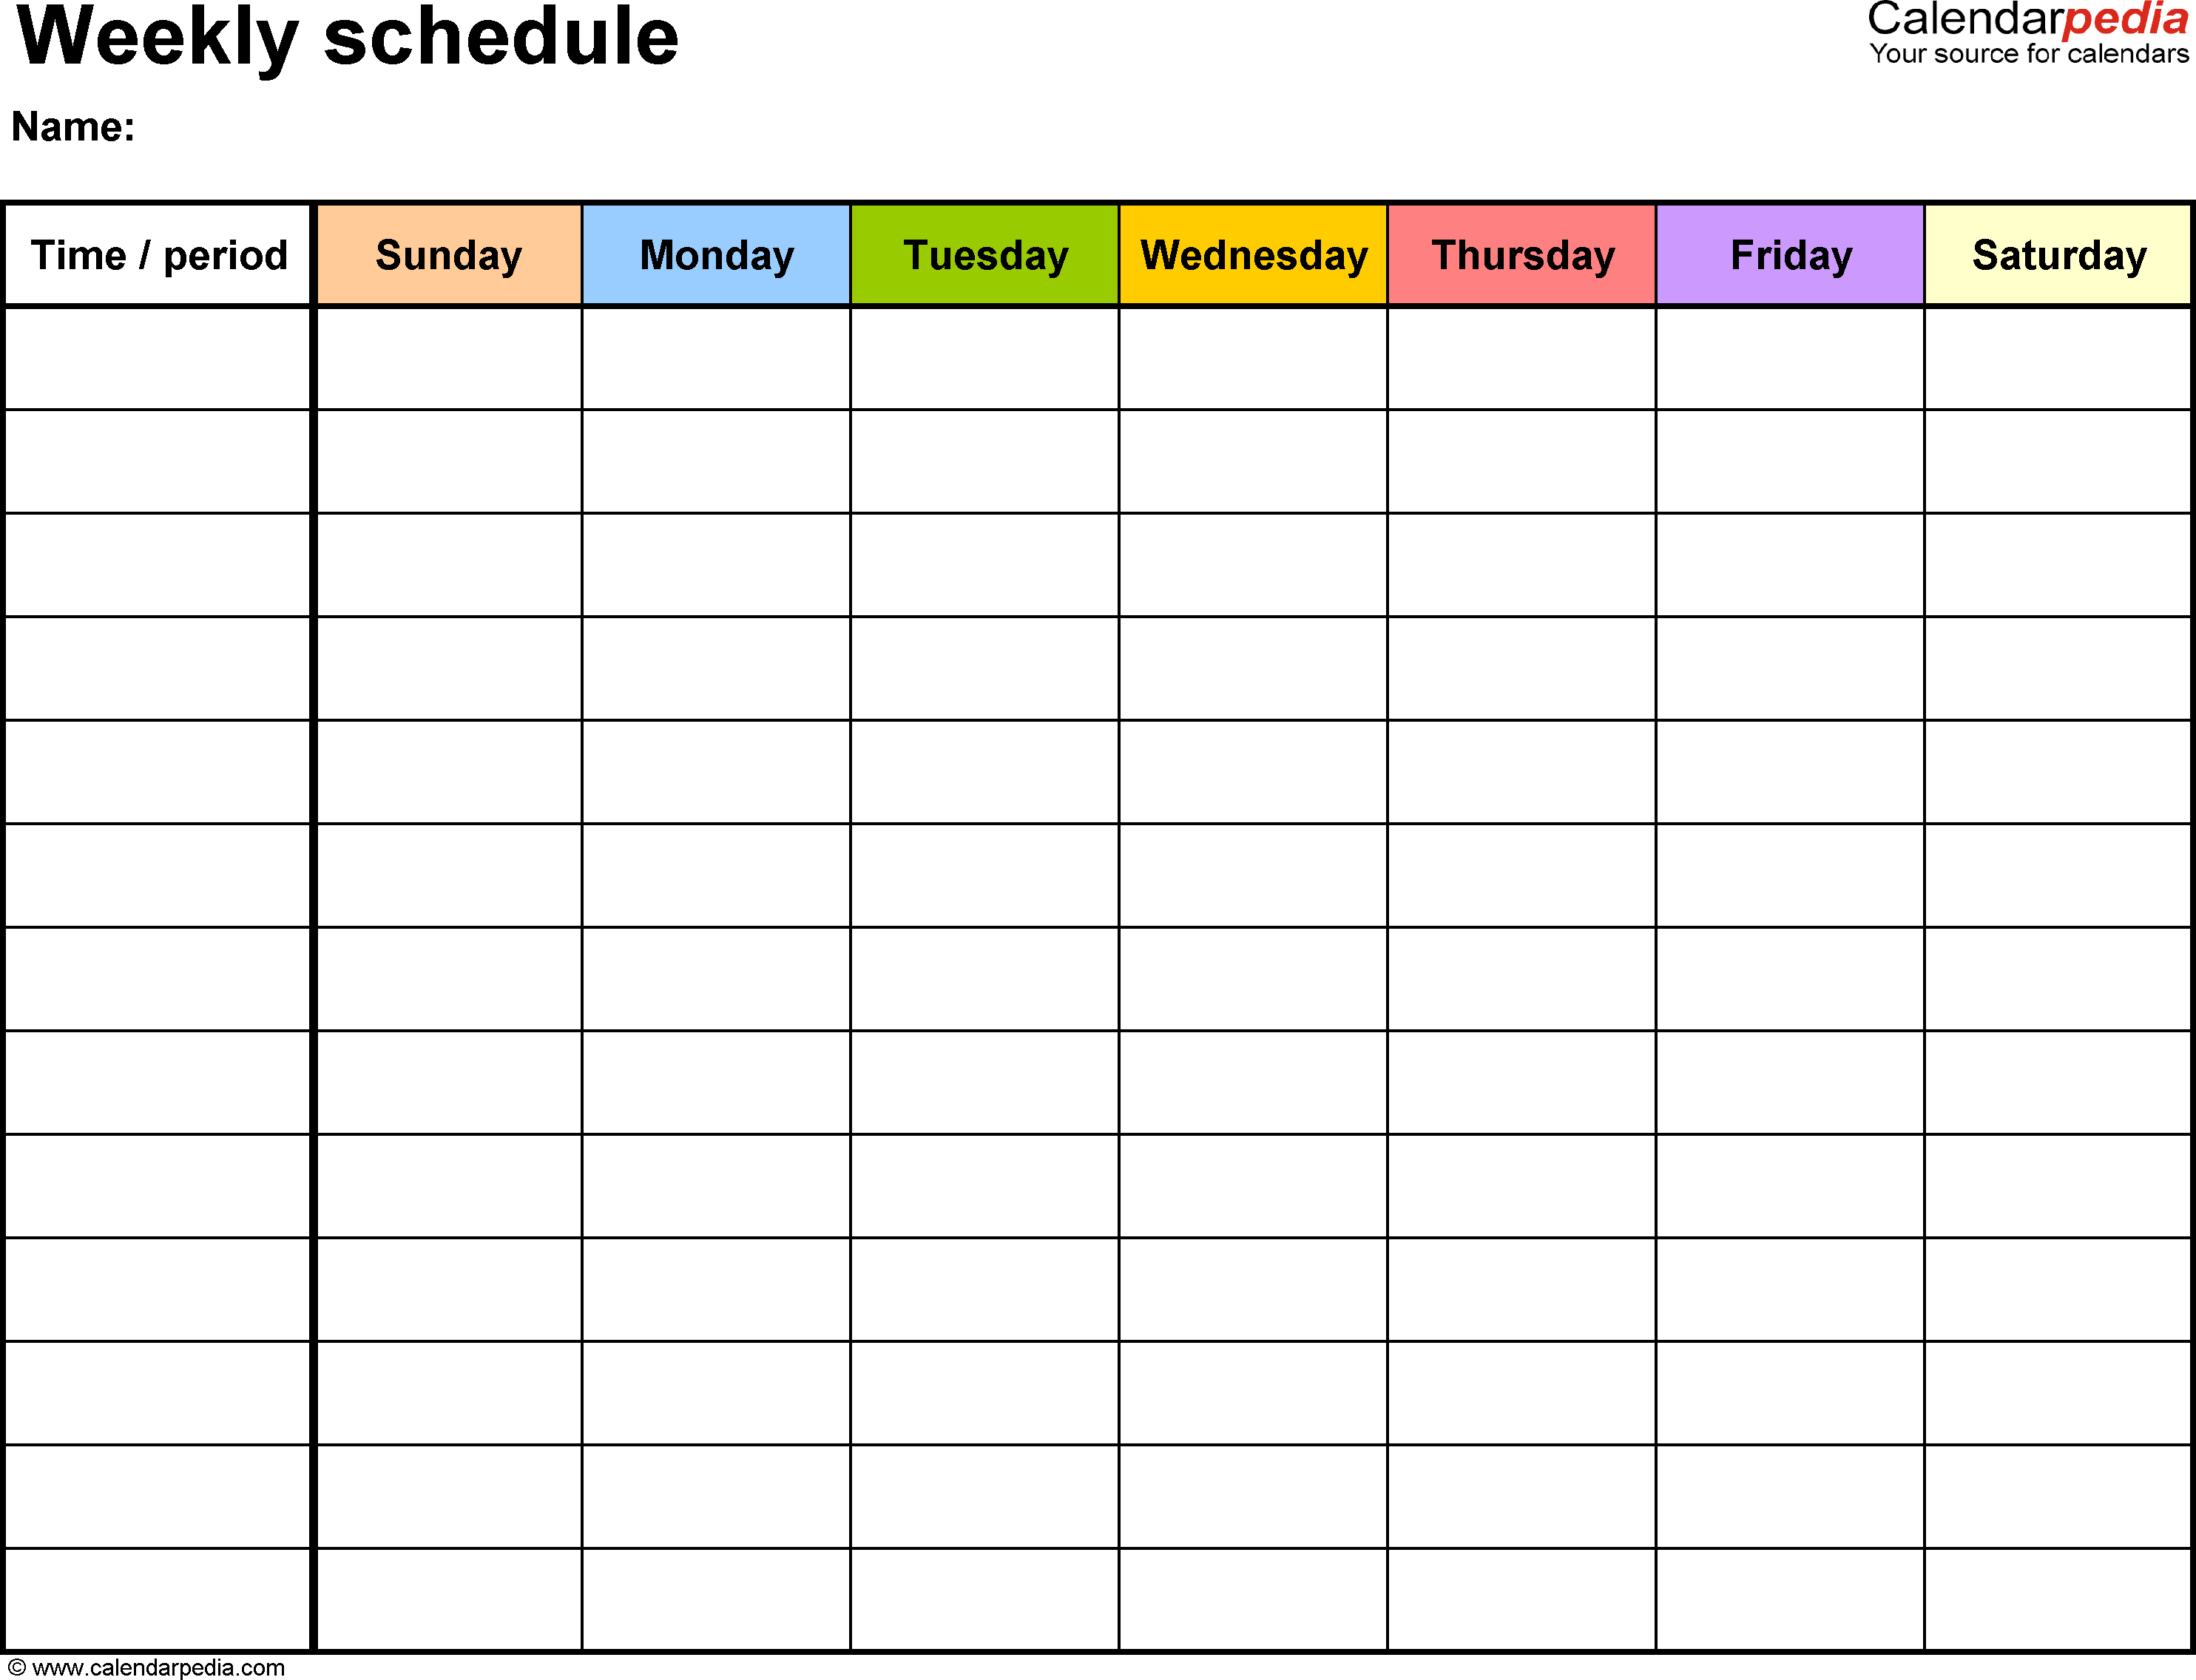 Free Weekly Schedule Templates For Excel   Templates  Yoga